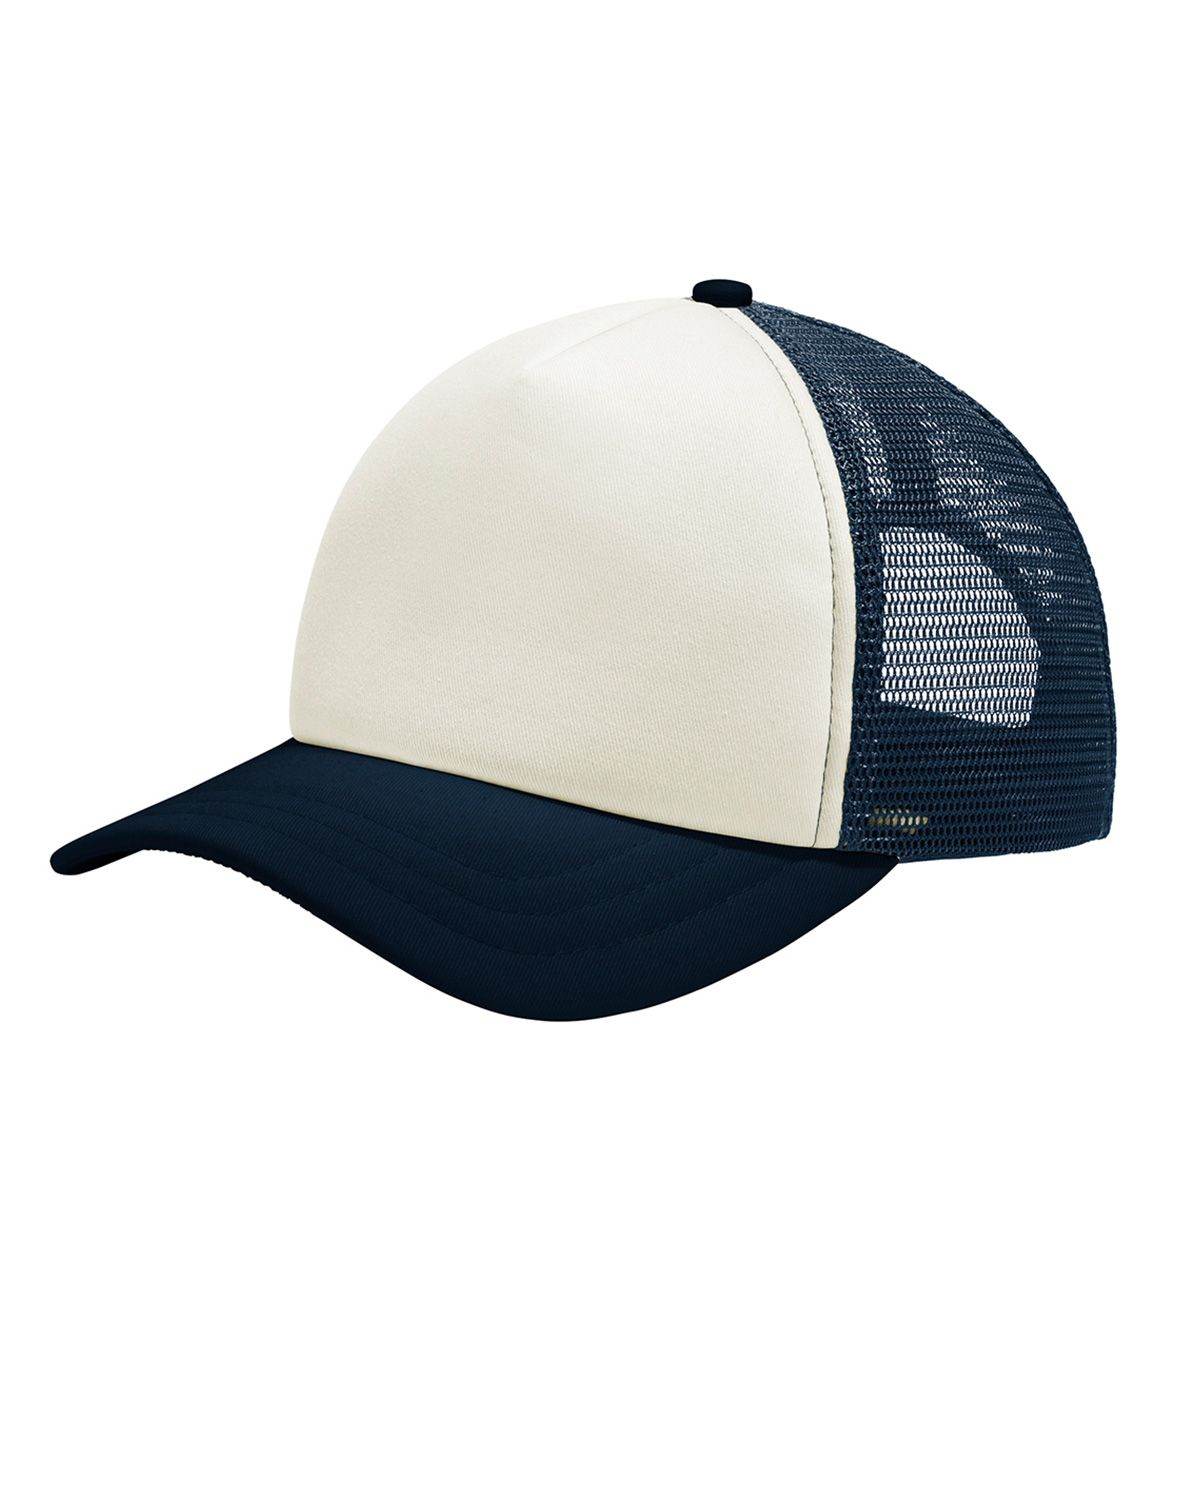 Port Authority C936 5-Panel Twill Foam Trucker Cap - Ivory/ Navy - One Size from Port Authority